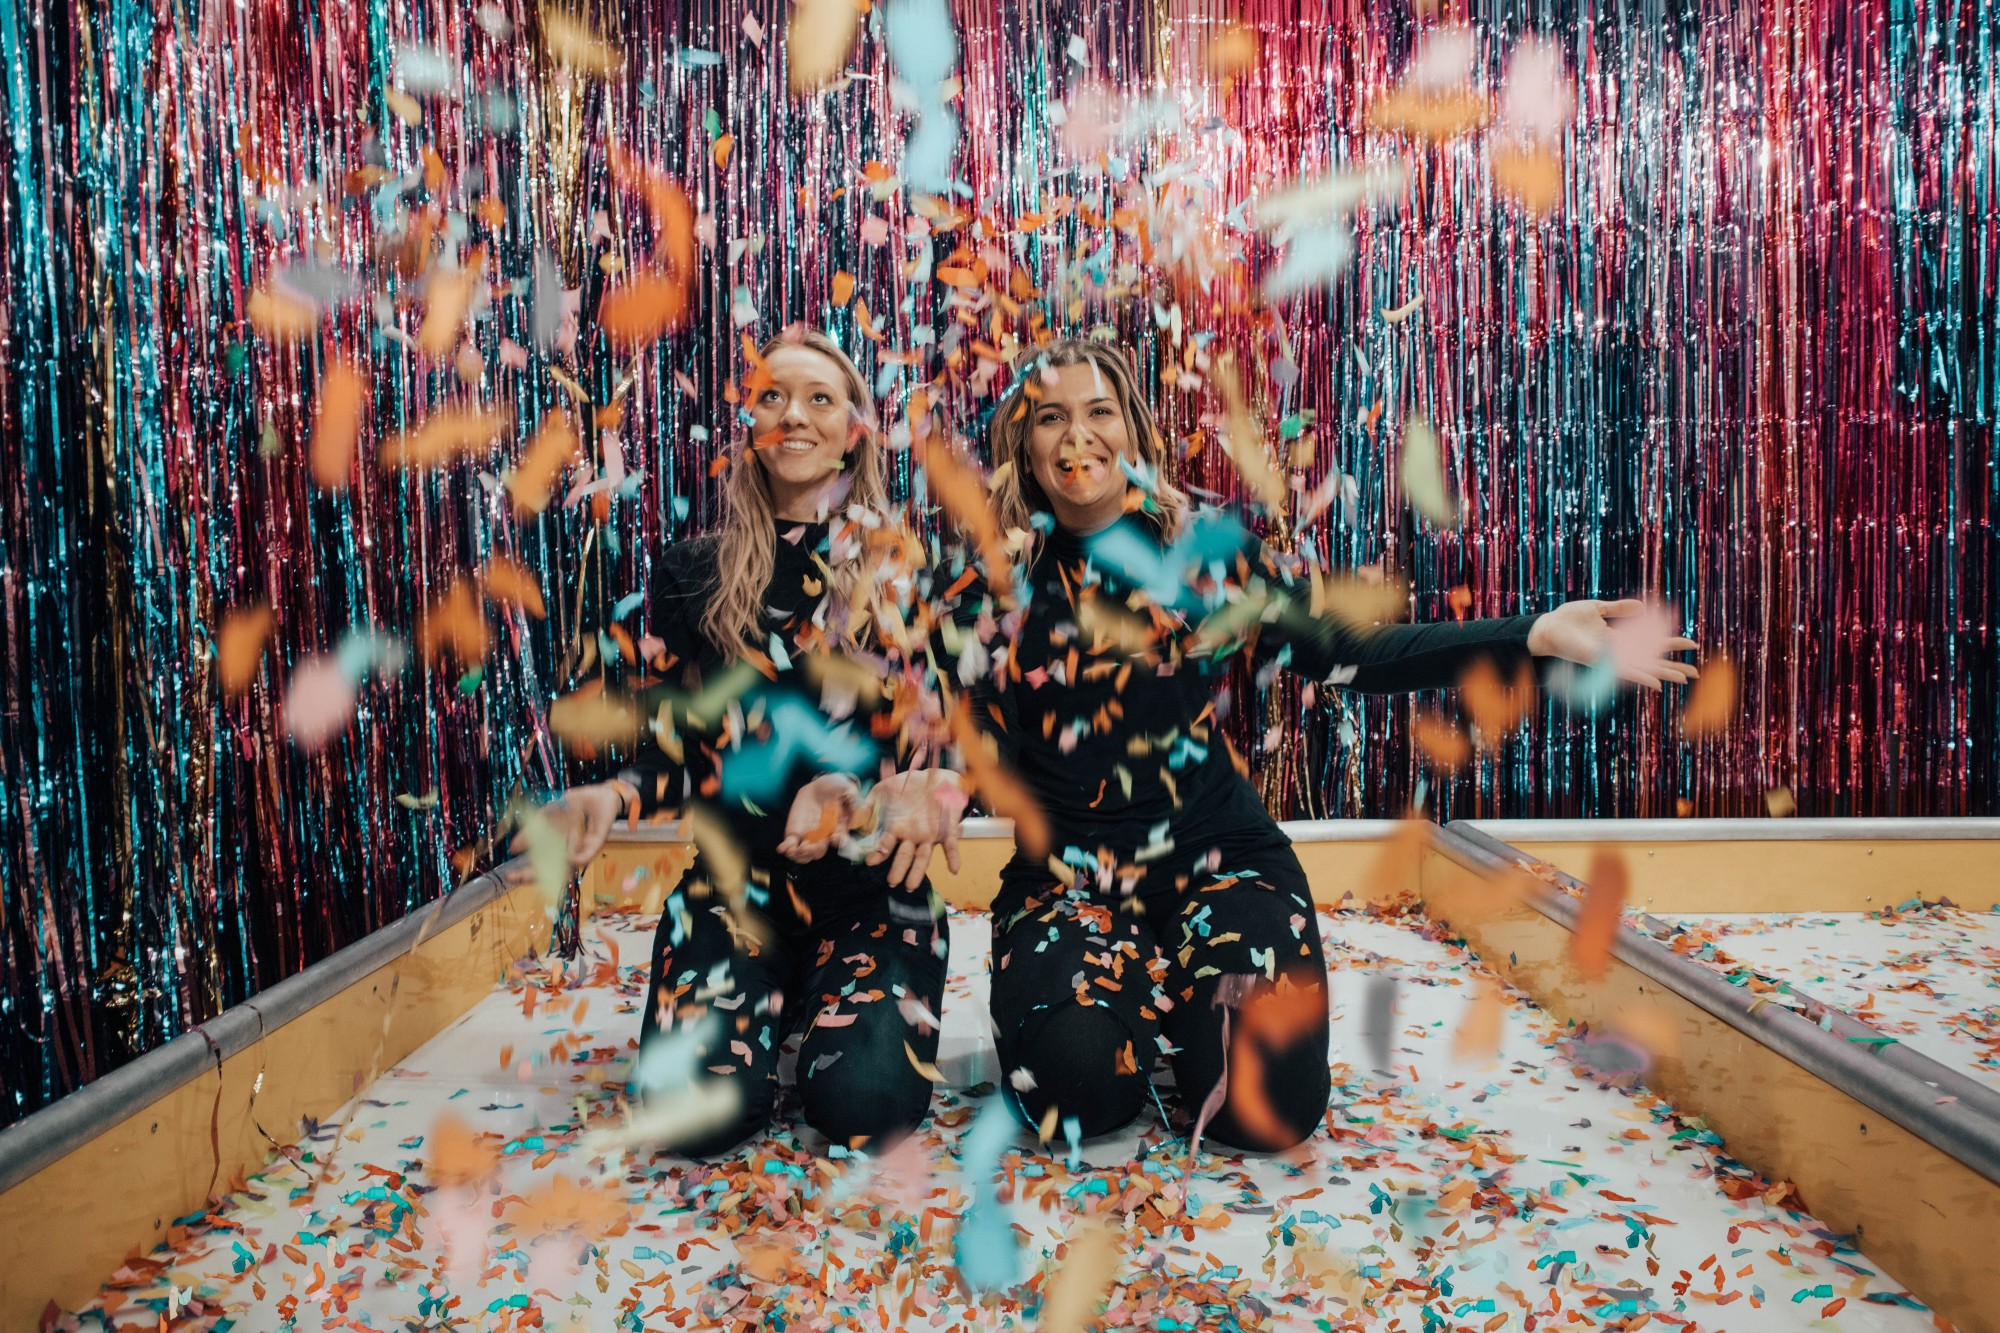 Two girls playing around with confetti.